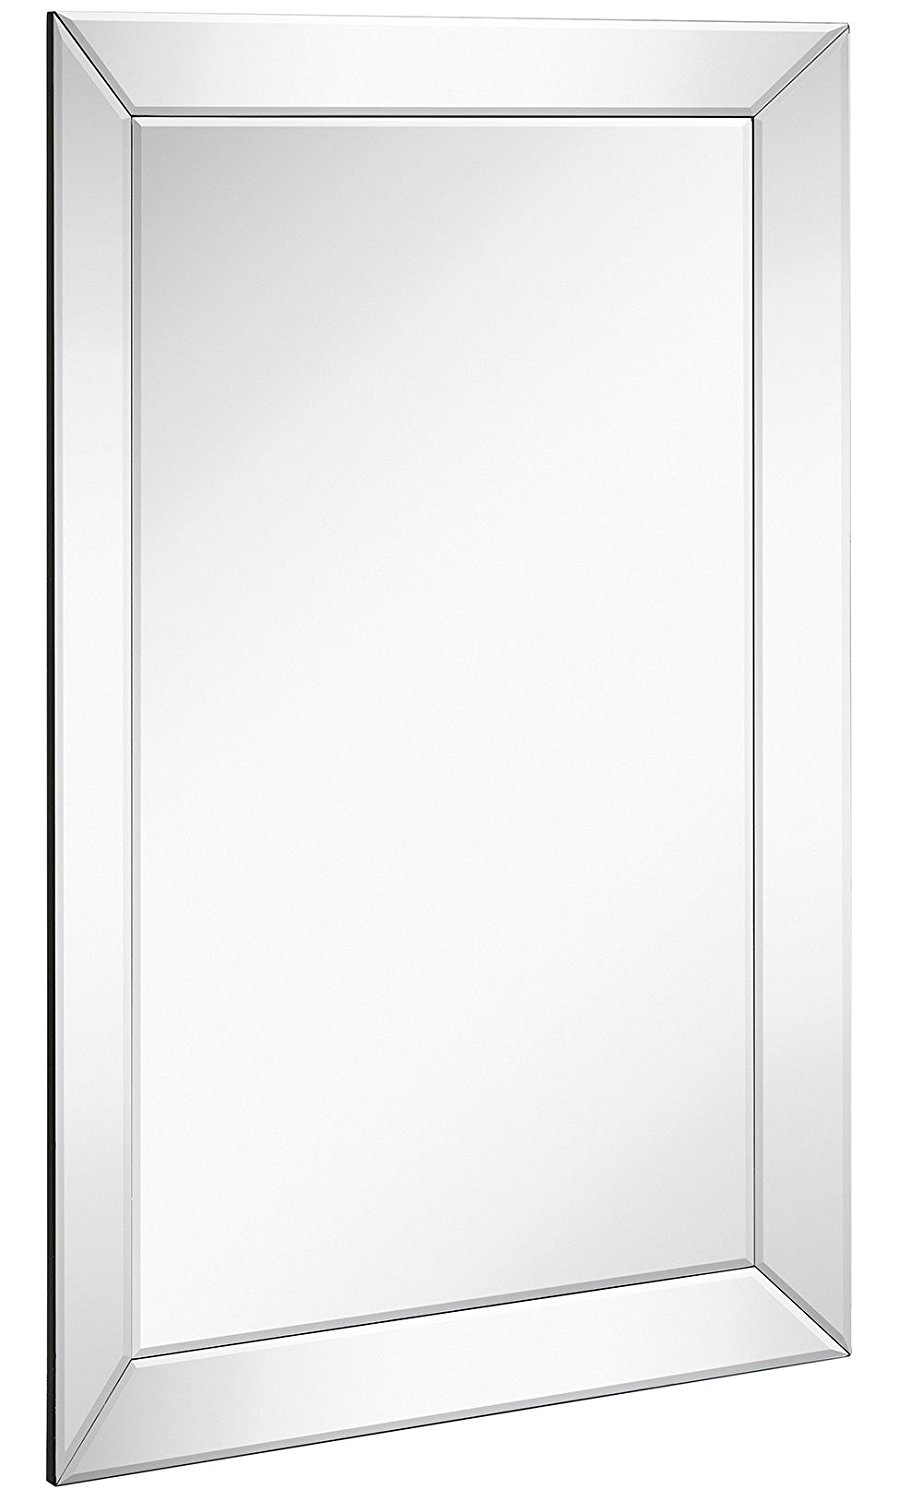 "Large Framed Wall Mirror with Angled Beveled Mirror Frame | Premium Silver Backed Glass Panel Vanity, Bedroom, or Bathroom | Luxury Mirrored Rectangle Hangs Horizontal or Vertical (24"" x 36"")"